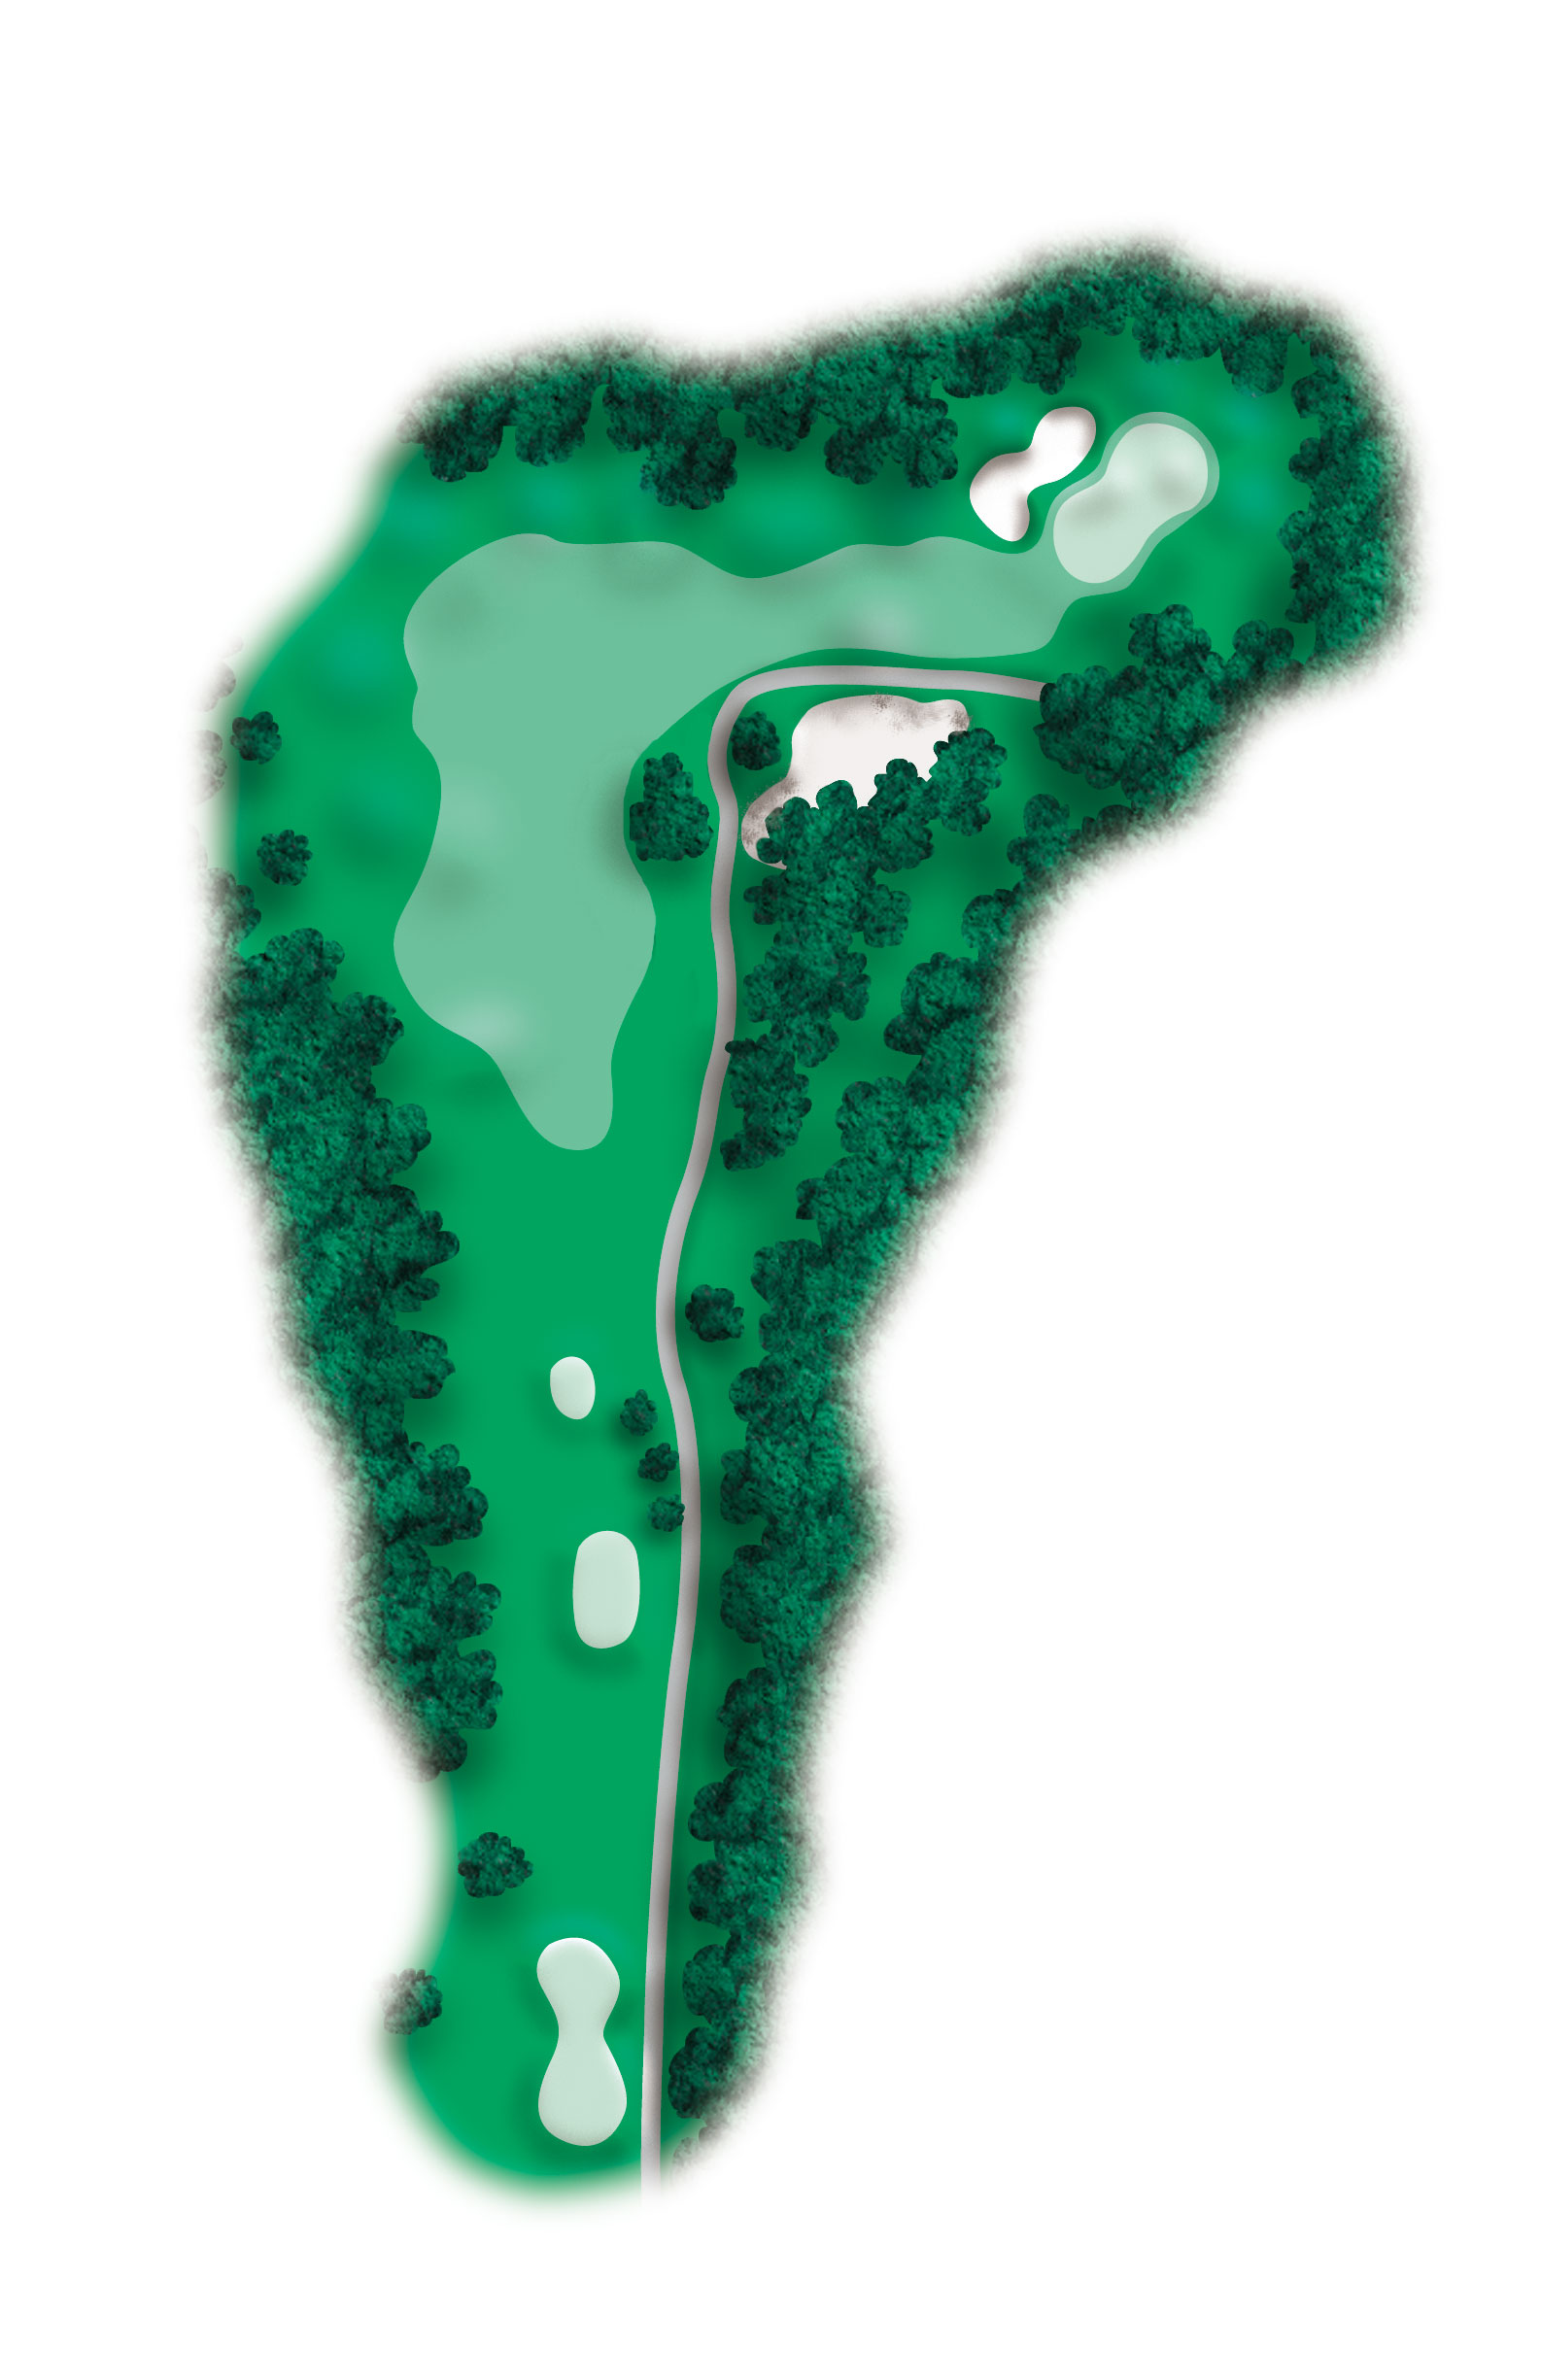 hole 1 diagram